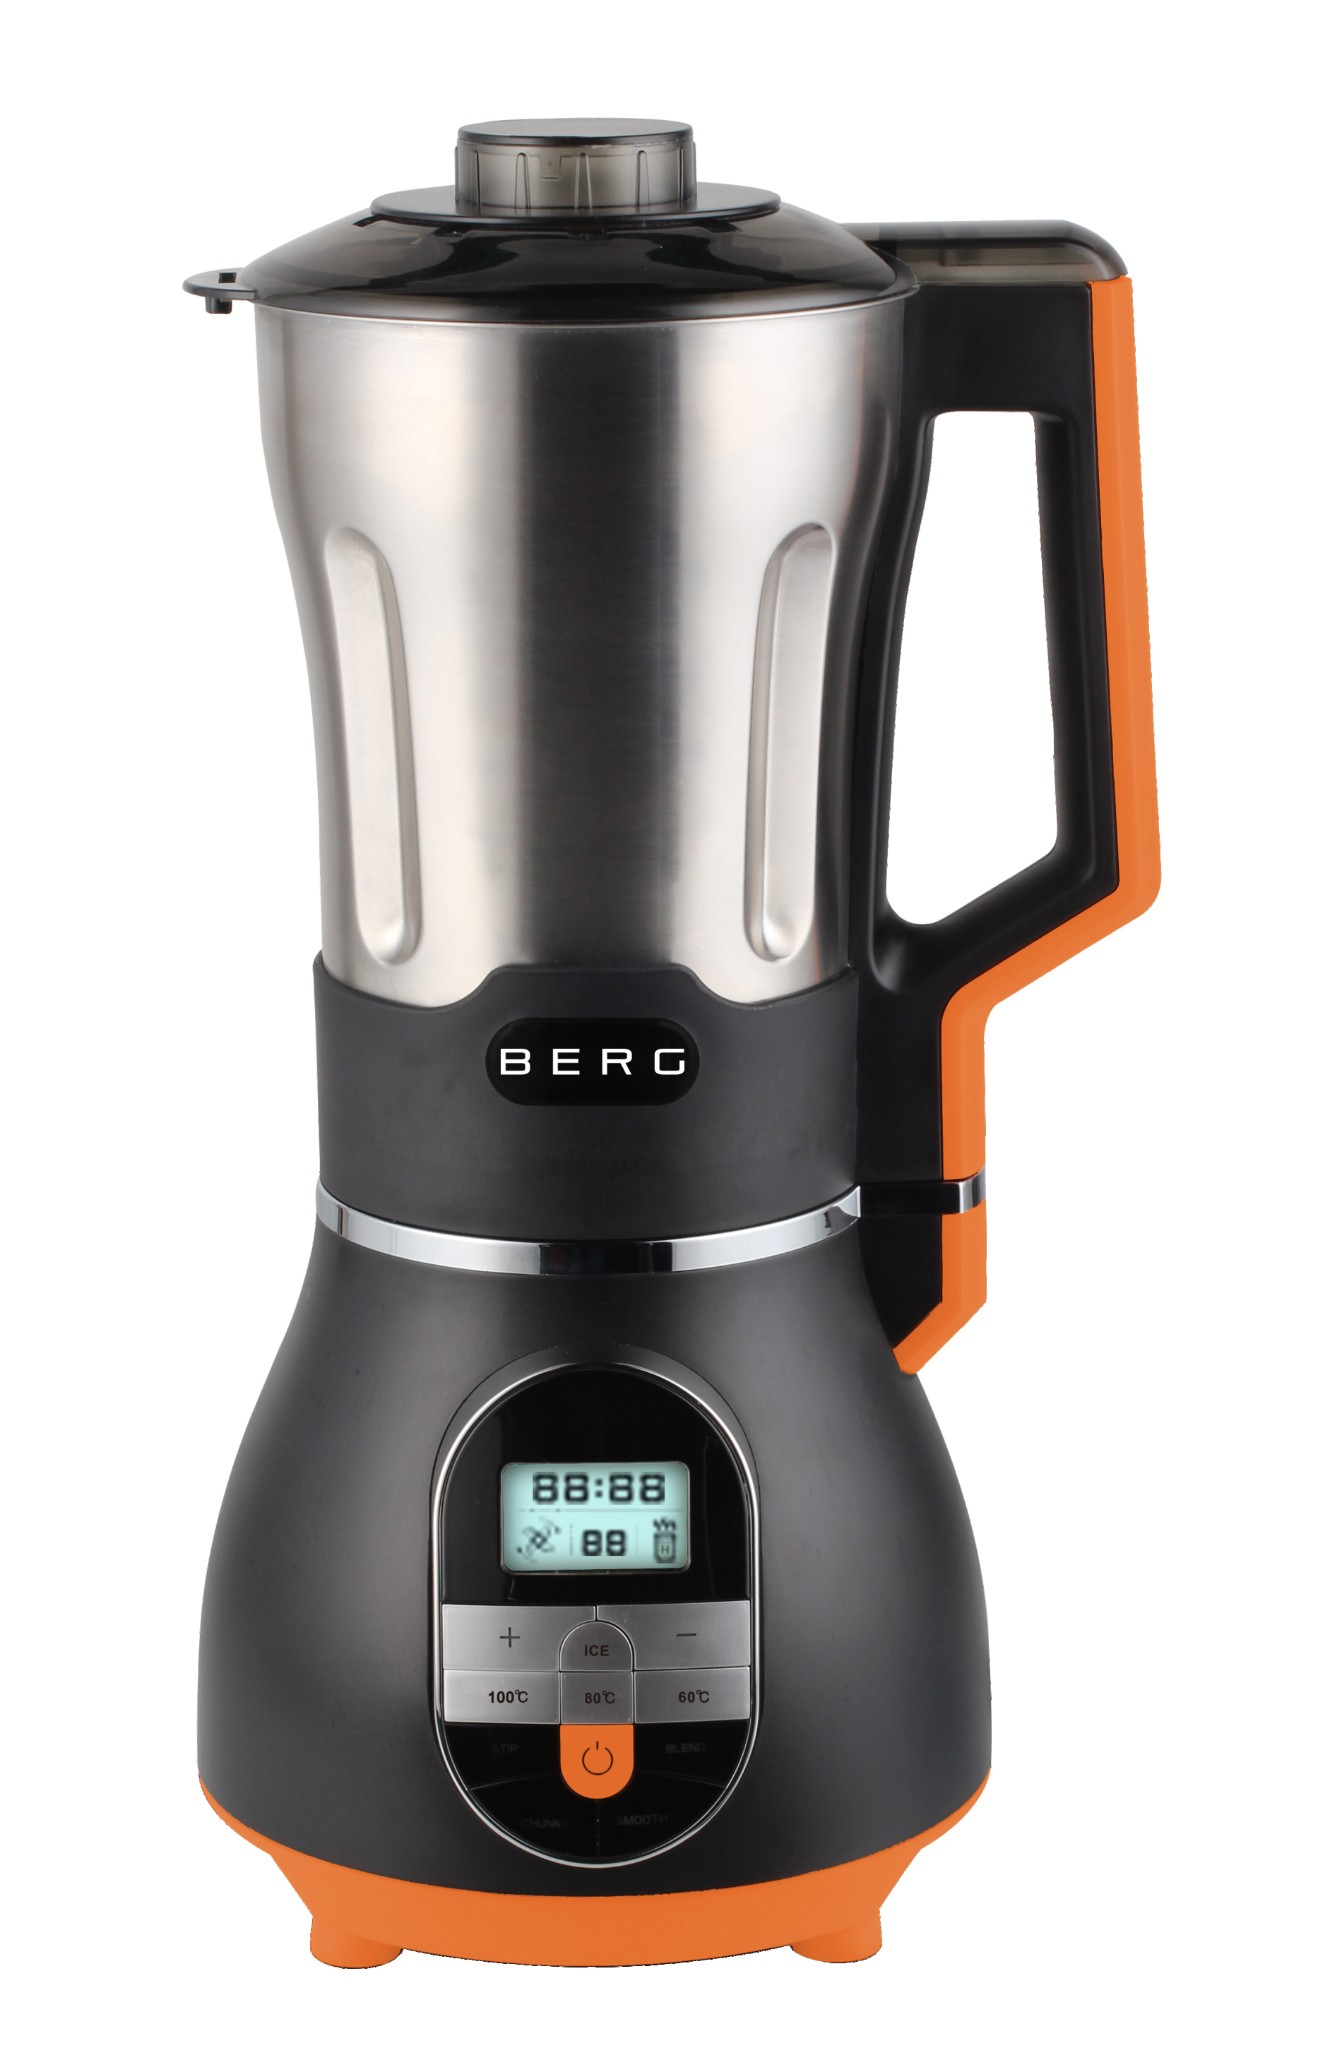 Food Blender To Make Soup